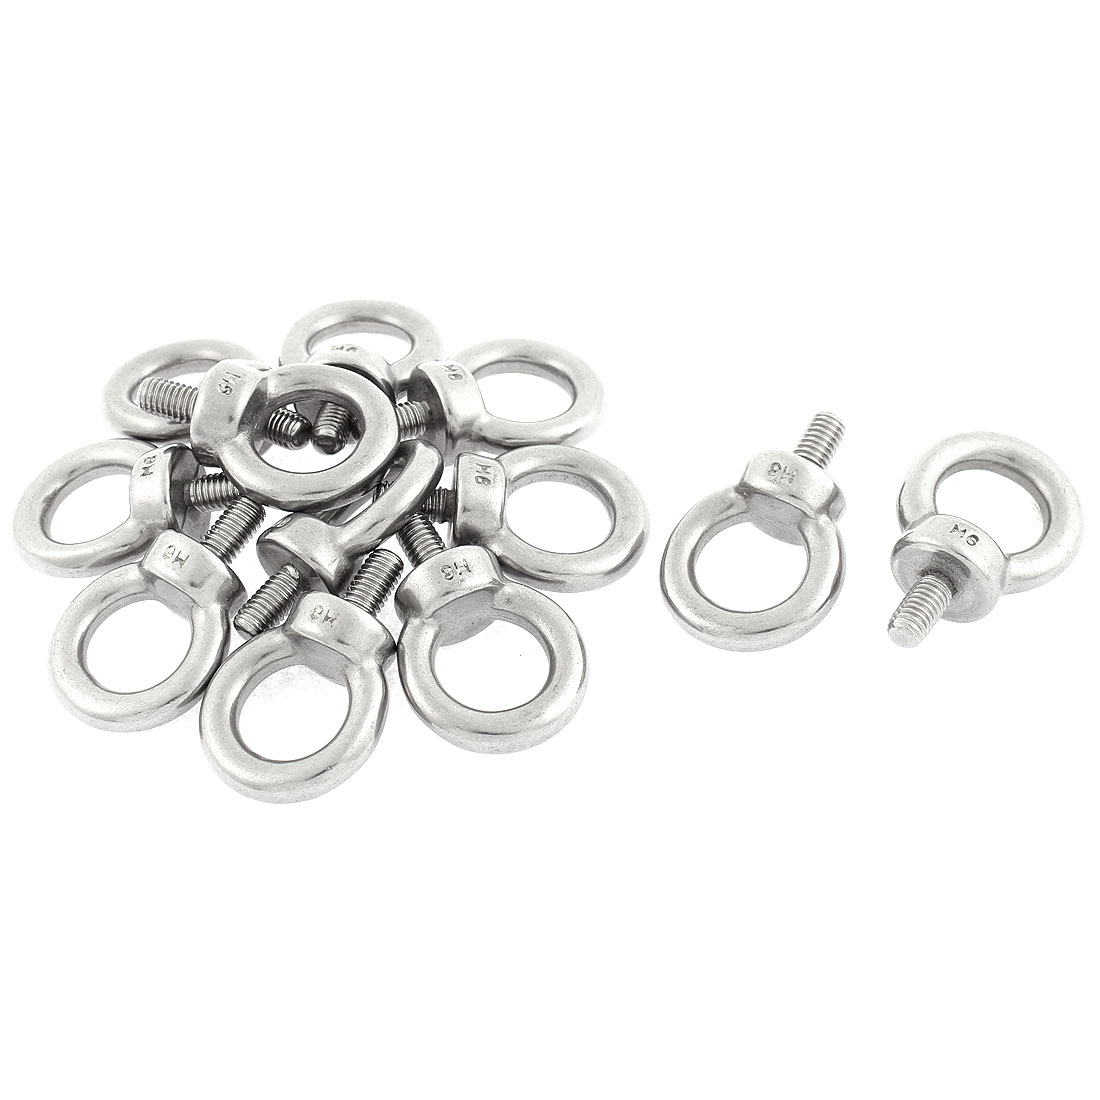 Machinery Shoulder Lifting Eye Bolt Ring M6 x 12mm Male Thread 12pcs